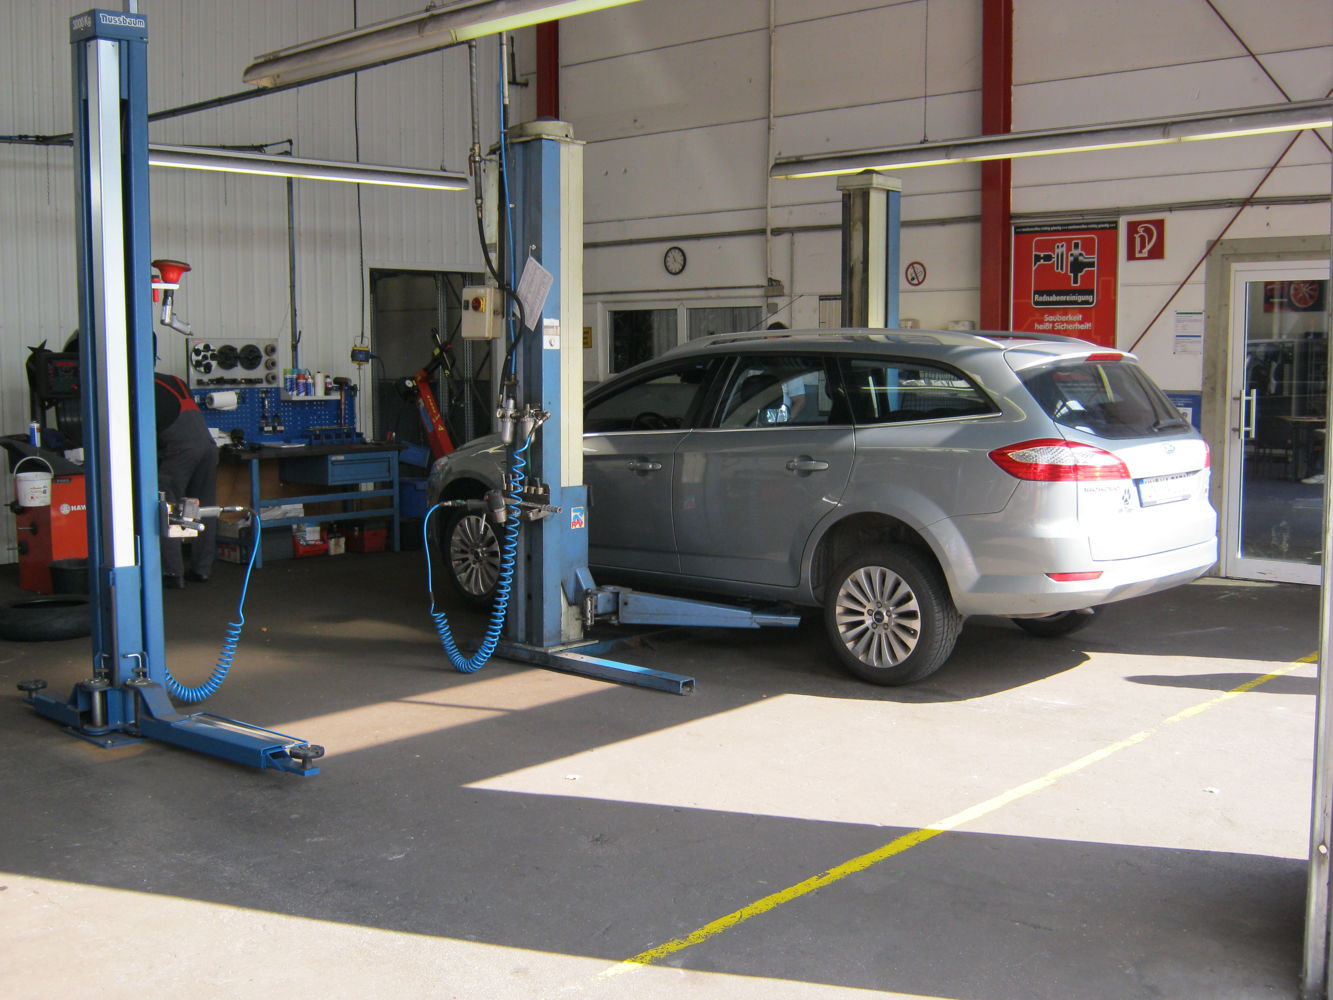 Tyre change on one lifting platform